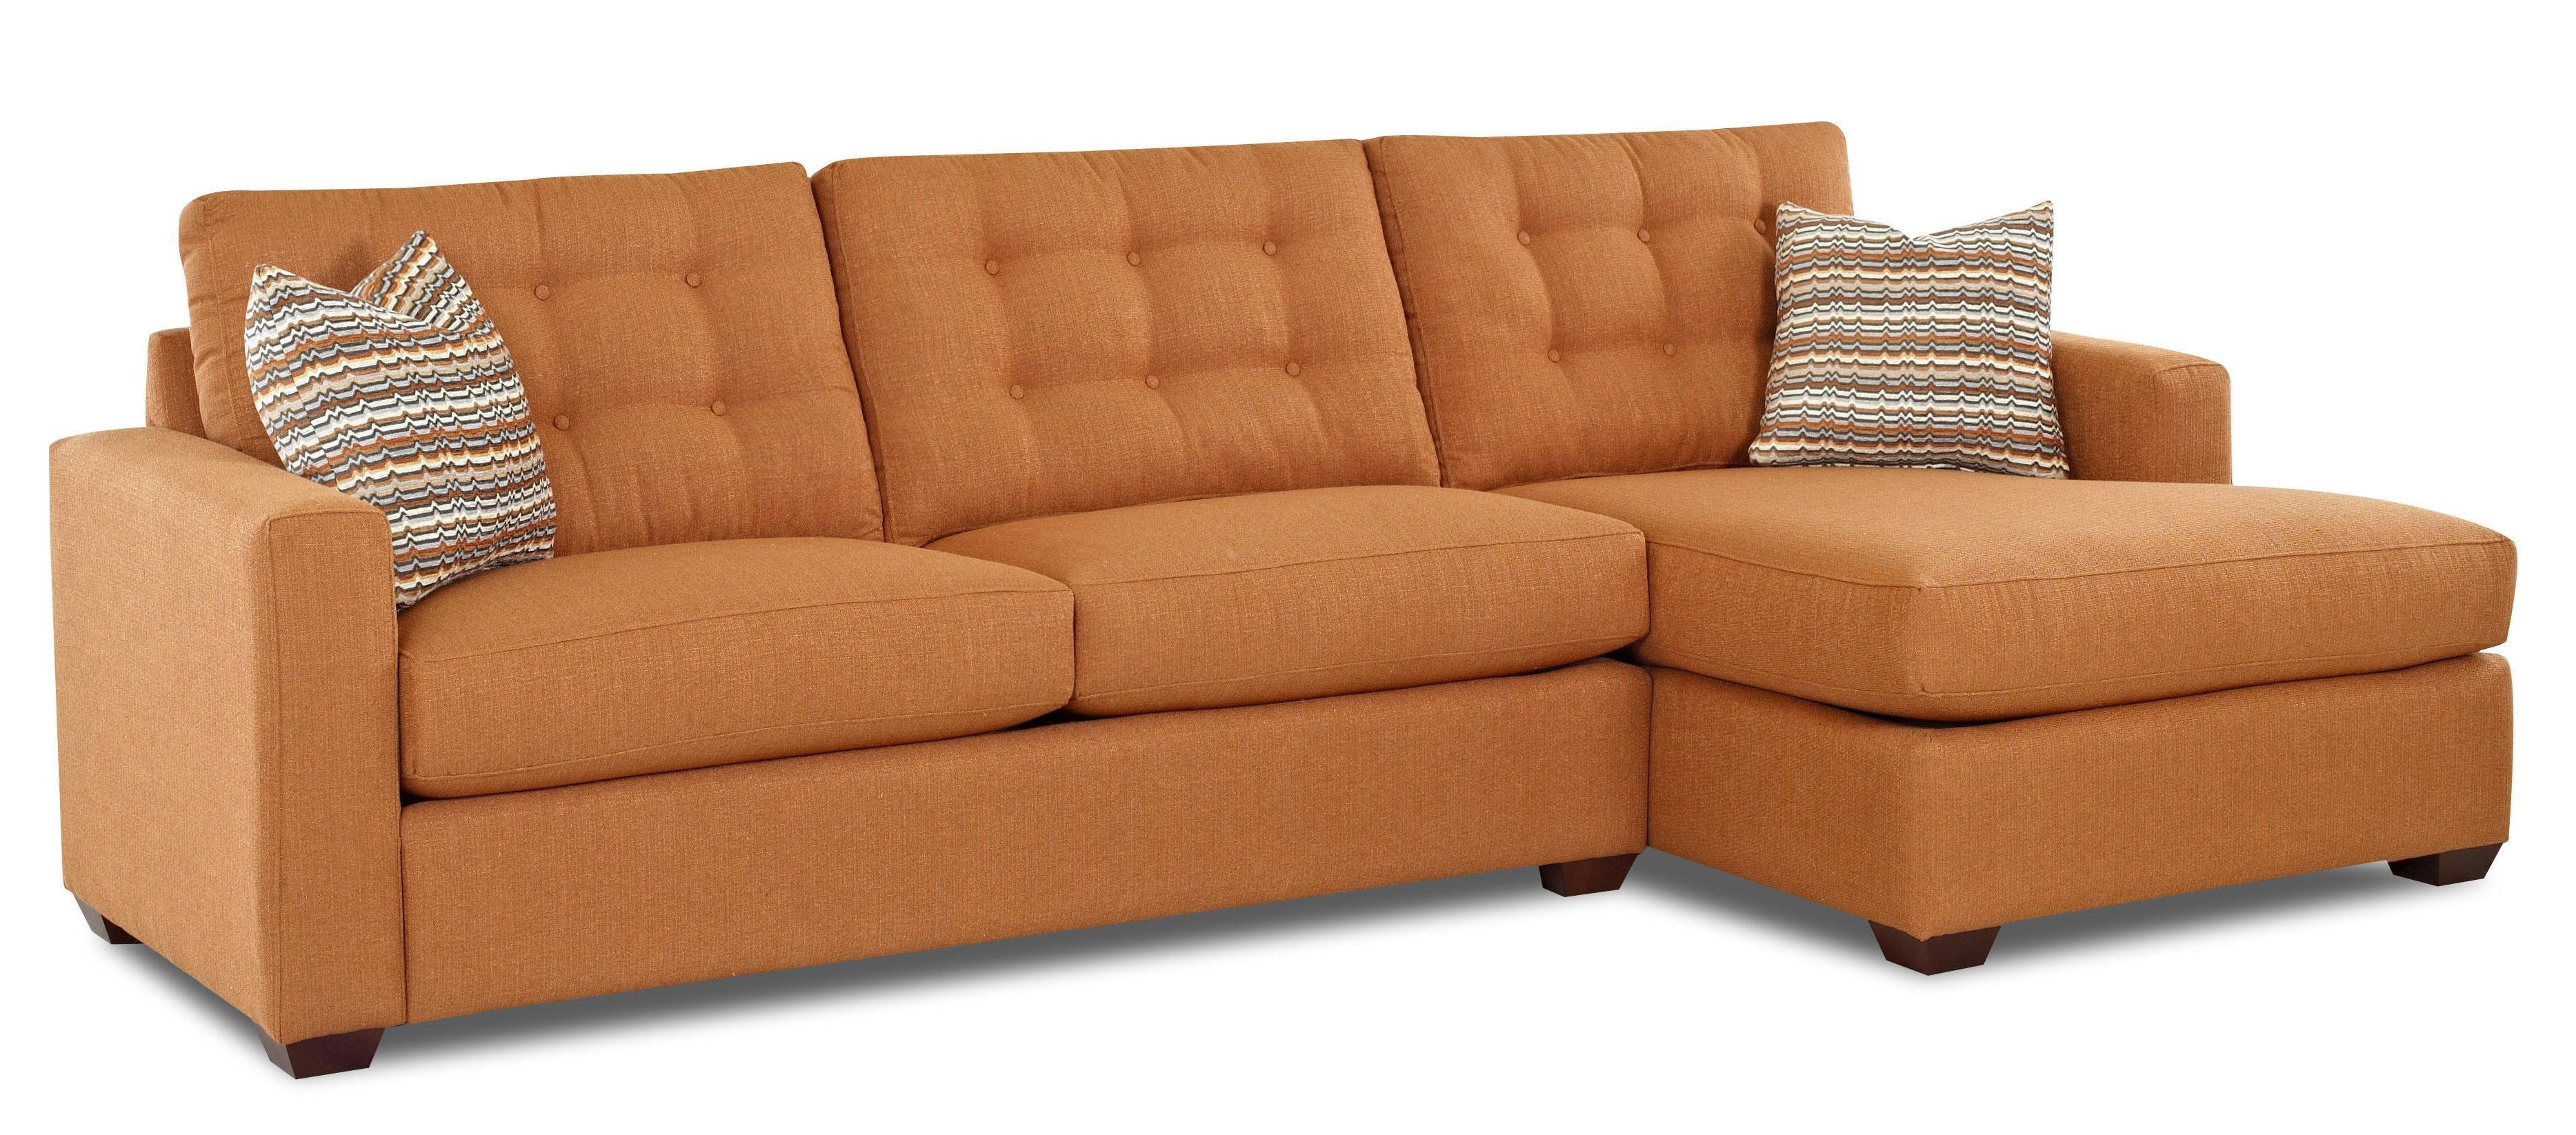 Fashionable Decoration In Sofa Chaise Lounge With Chaise Lounge Sleeper Sofa In Couch Chaise Lounges (View 8 of 15)